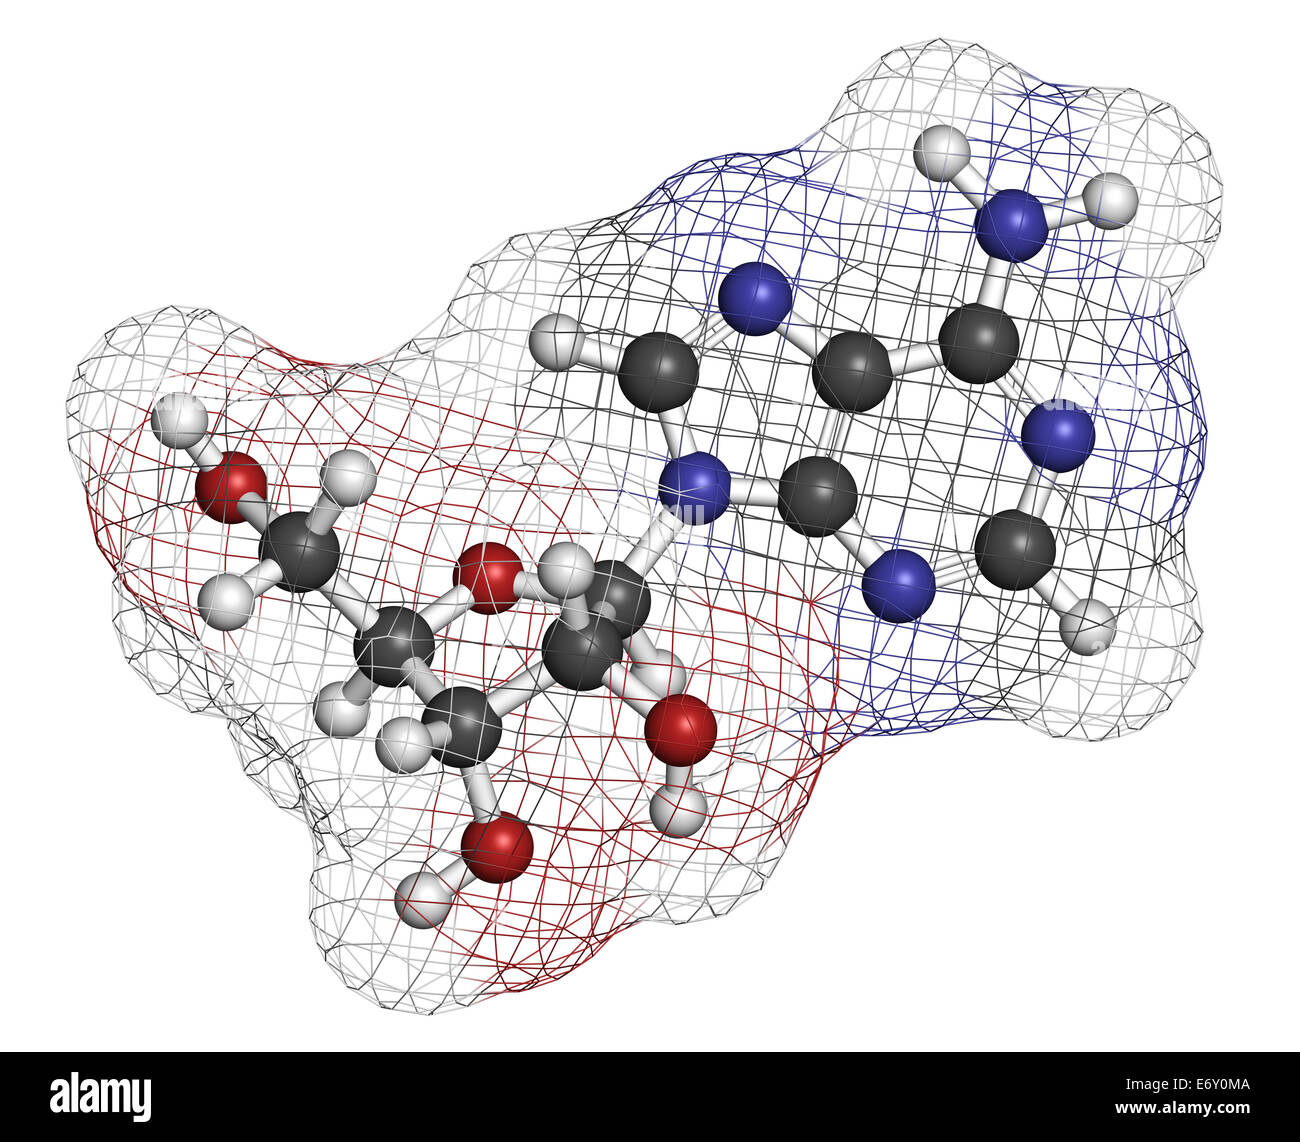 Adenosine (Ado) purine nucleoside molecule. Important component of ATP, ADP, cAMP and RNA. Also used as drug. Atoms Stock Photo